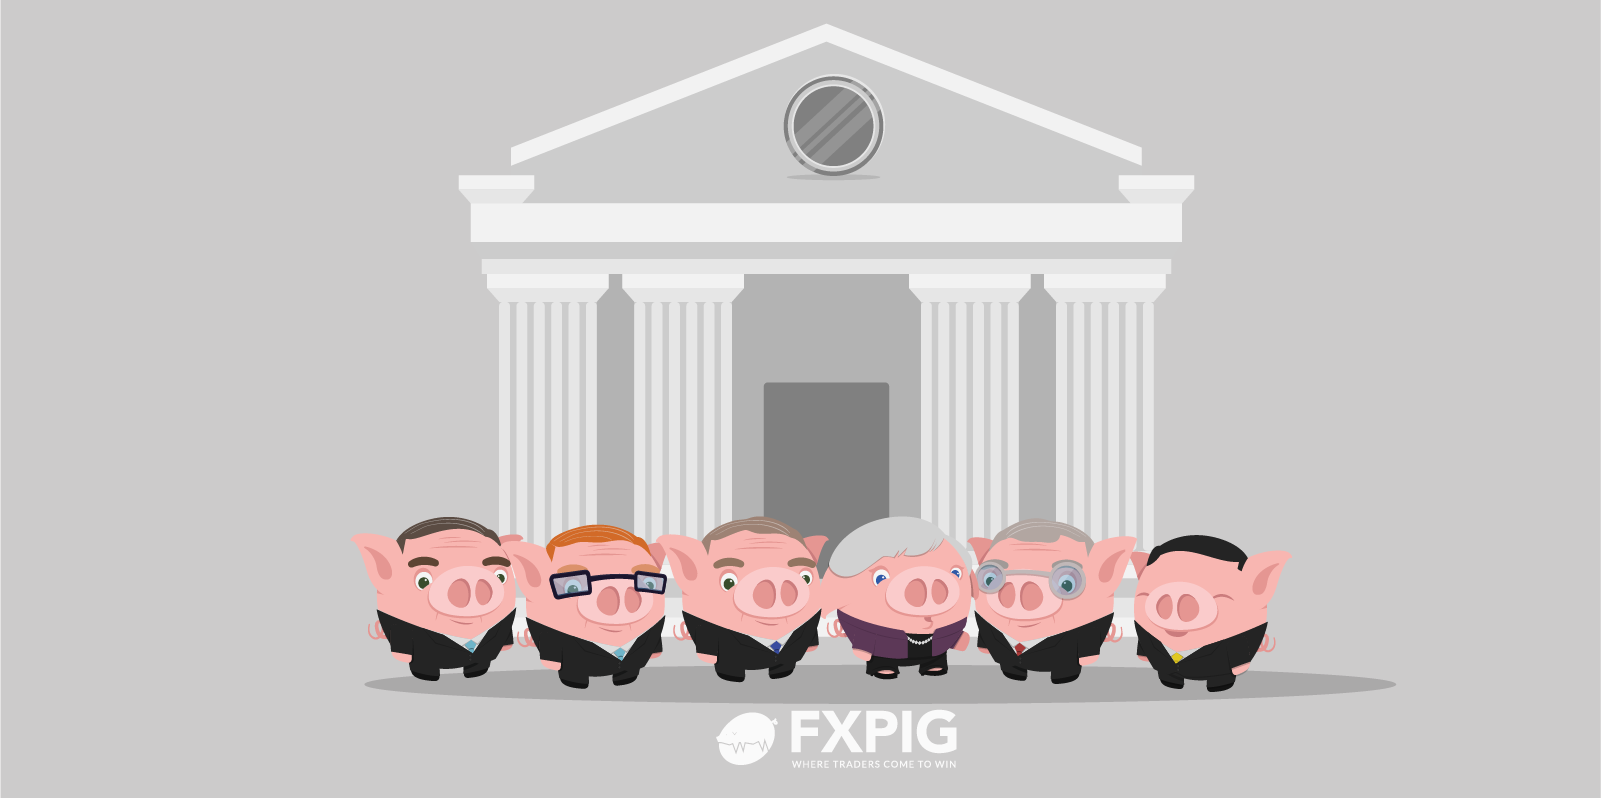 Forex_week_ahead_bankers_FXPIG